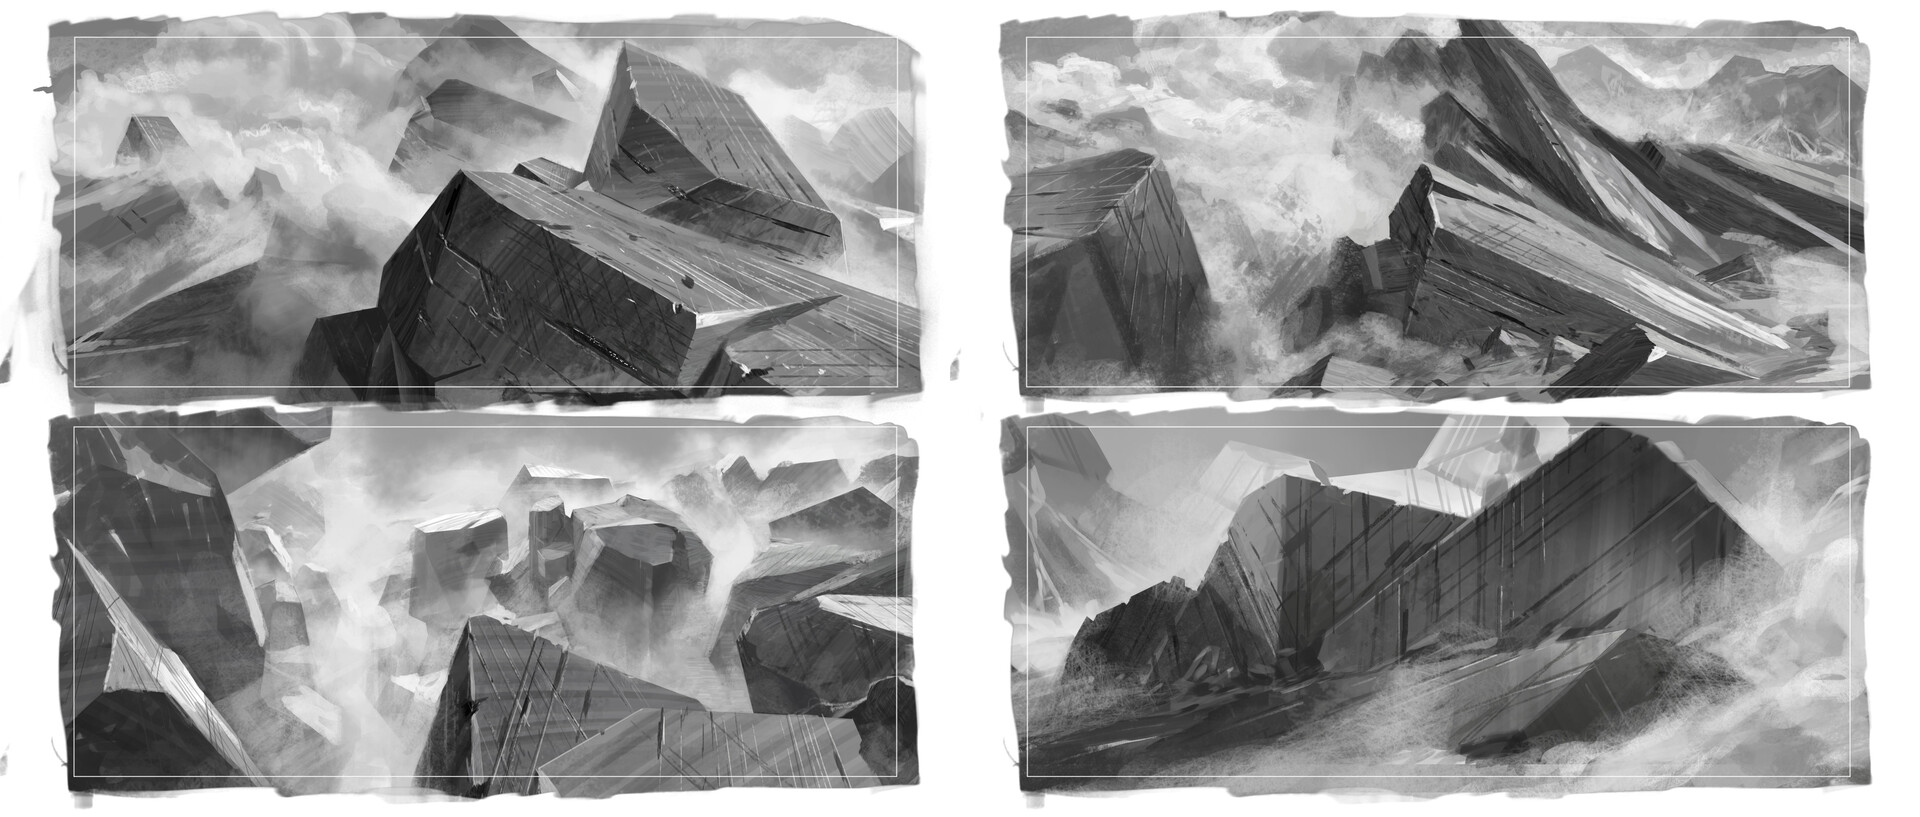 More thumbnails. I might do as much as a dozen of these before settling on a few to take to a full-blown scene.